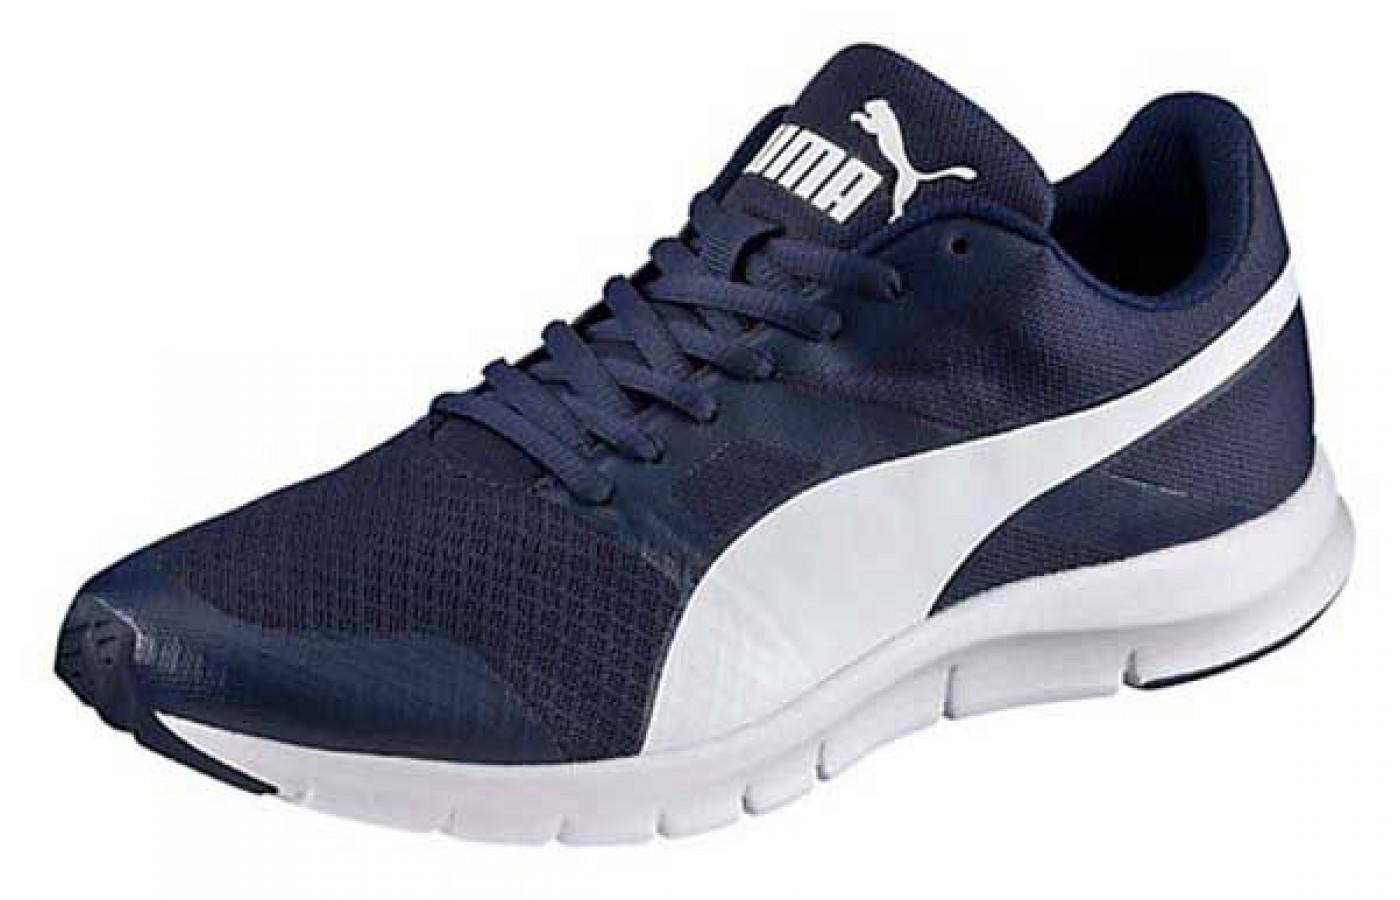 The Puma Flex Racer is built for road running